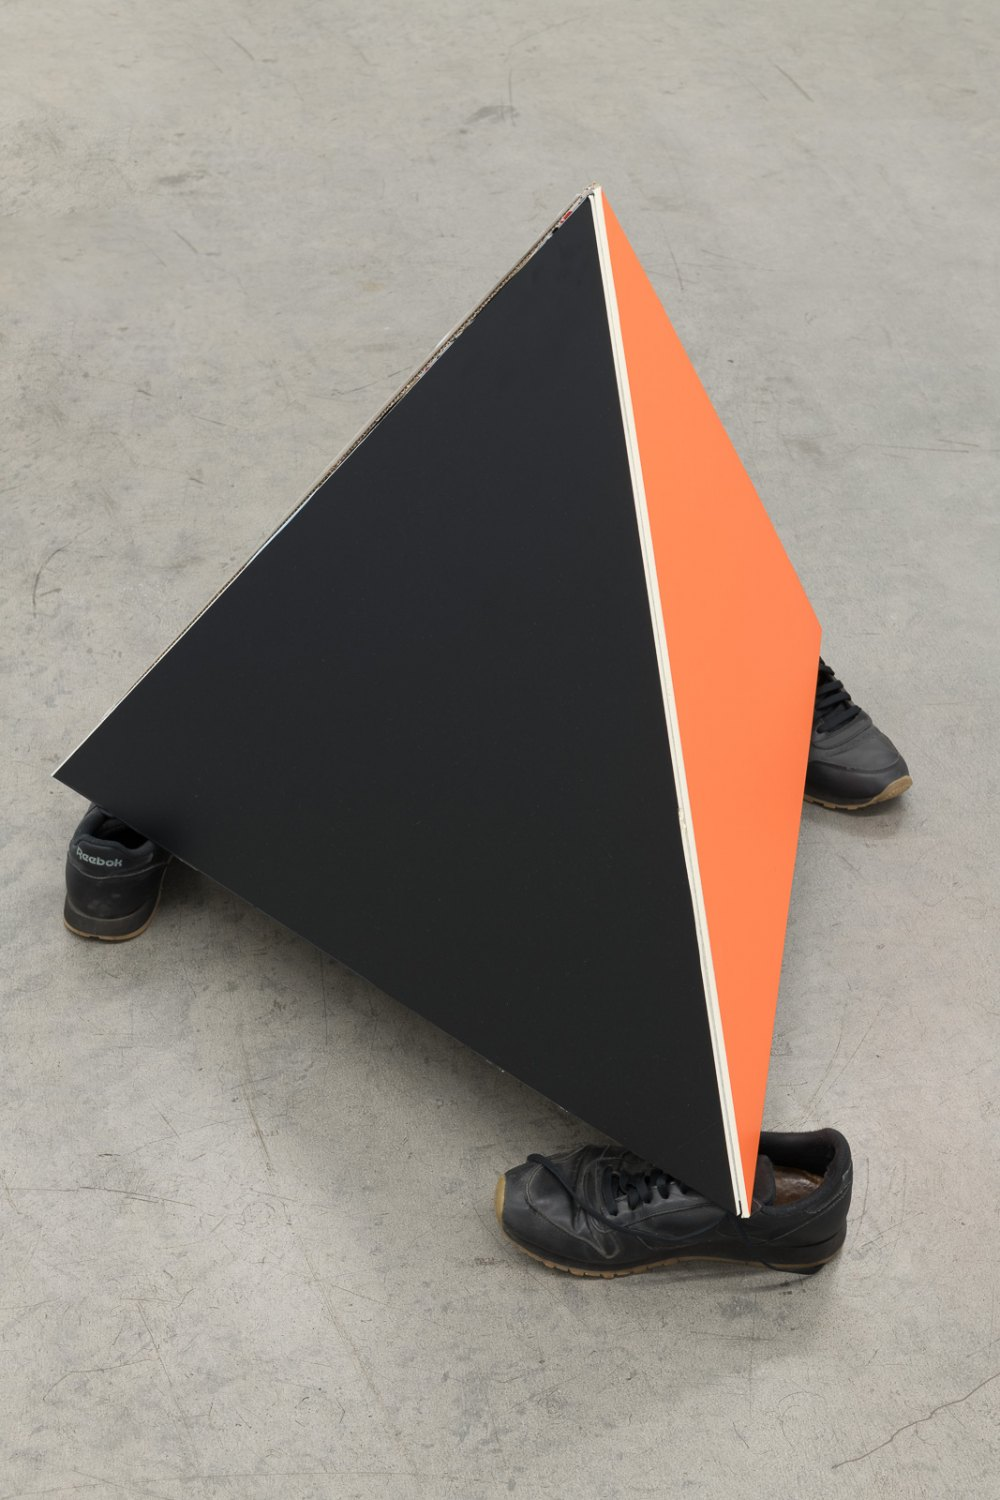 Karl Holmqvist Untitled (Foam core board pyramid), 2021 Gift wrapping paper and self-adhesive colored film on foam core board, gaffa tape, shoes dimensions variable